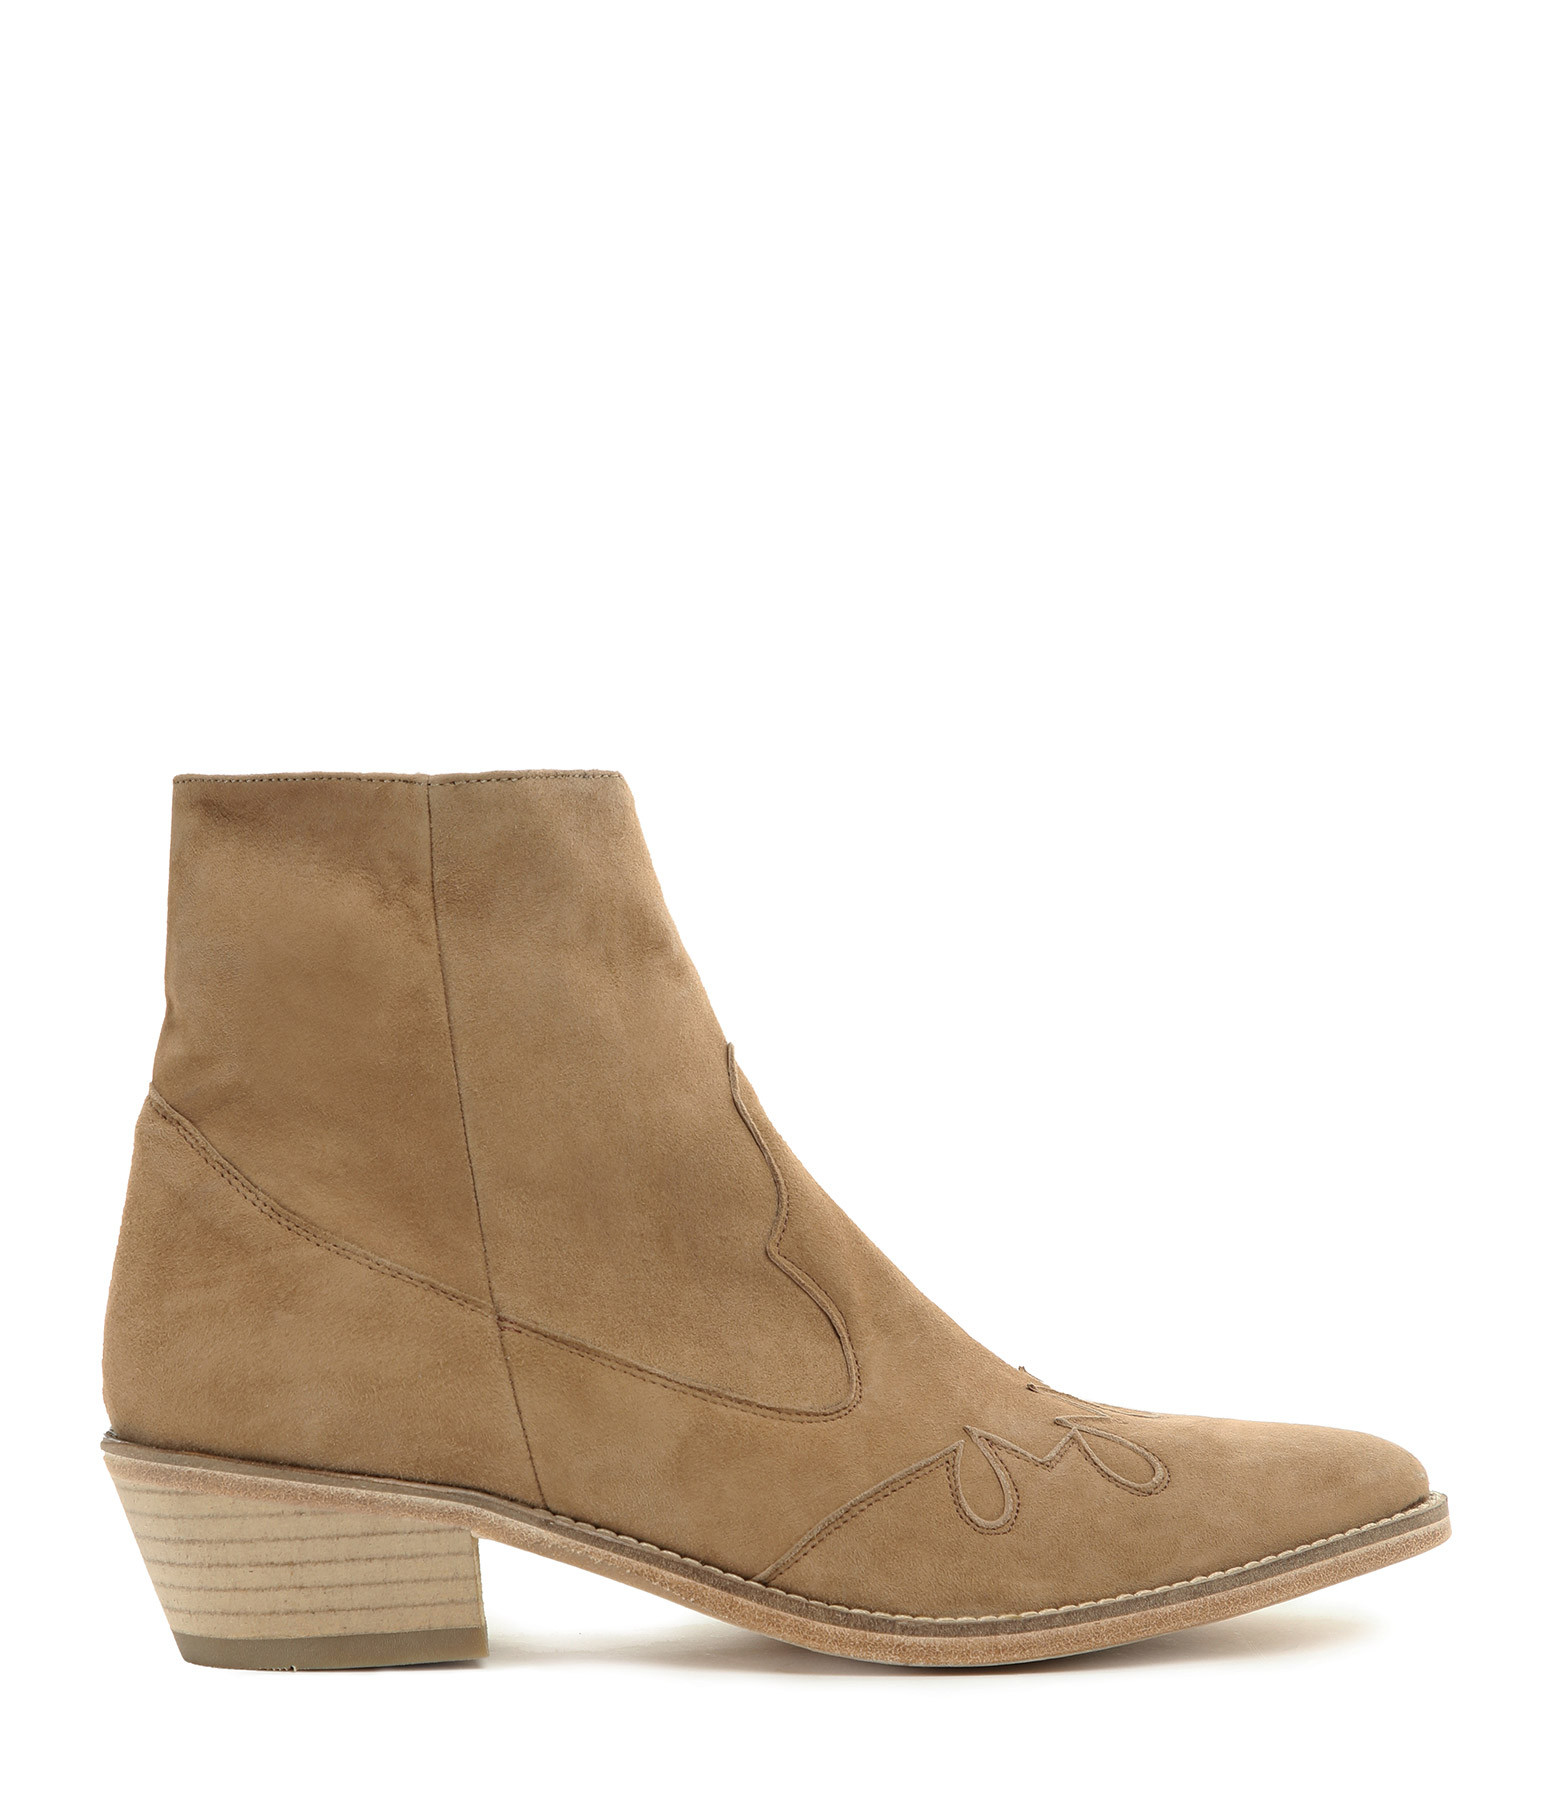 VALENTINE GAUTHIER - Bottines Keith Cuir Tabac